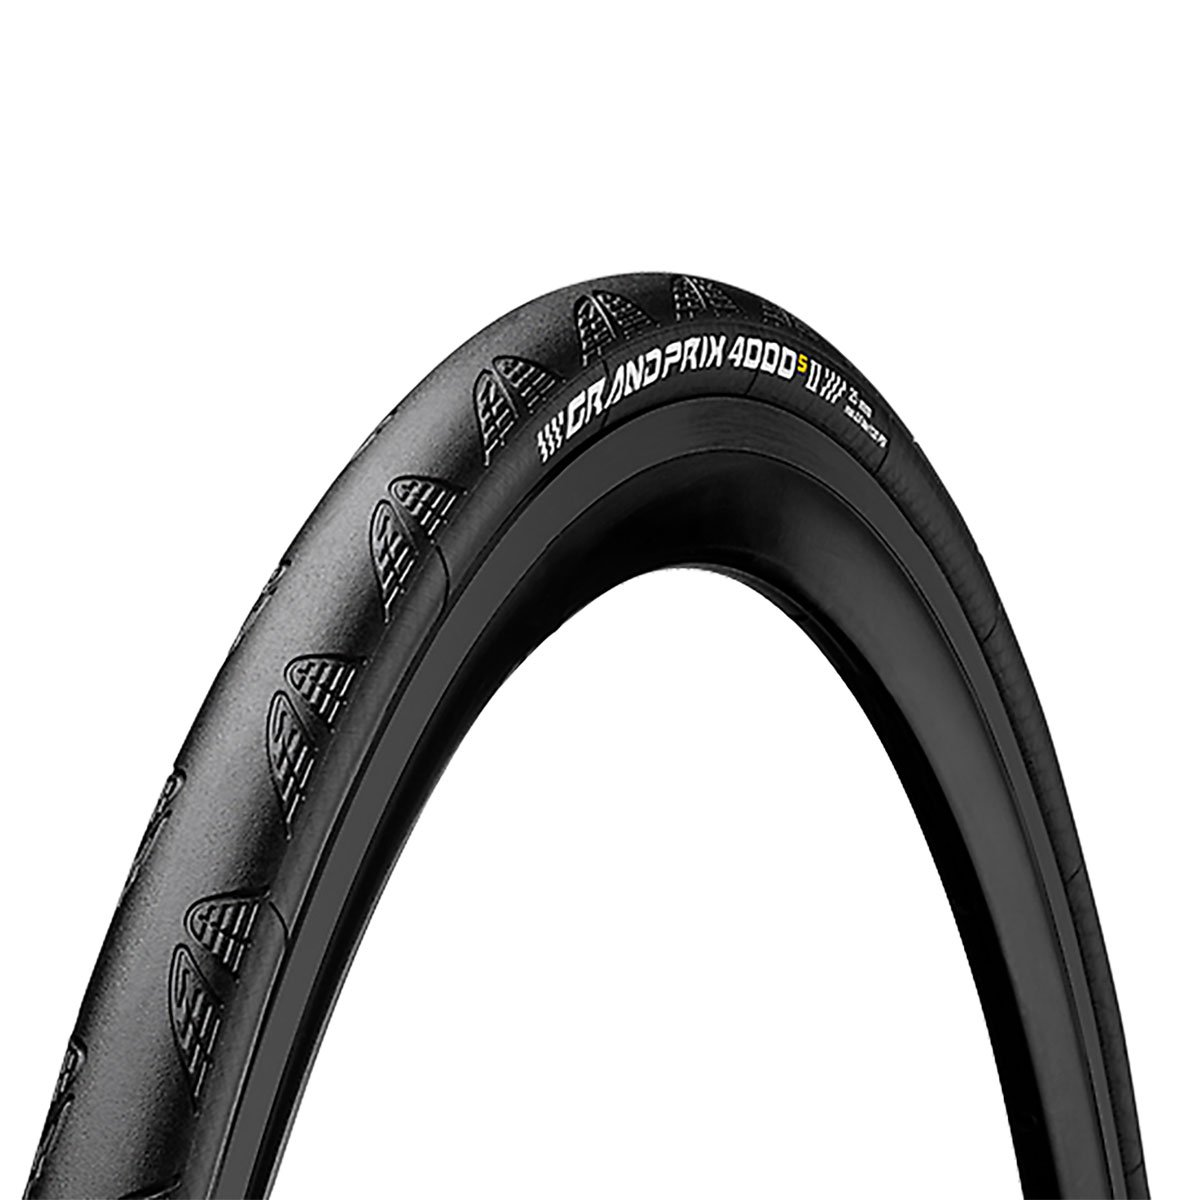 Continental Grand Prix 4000 S II Road Clincher, Black, 700 x 23C